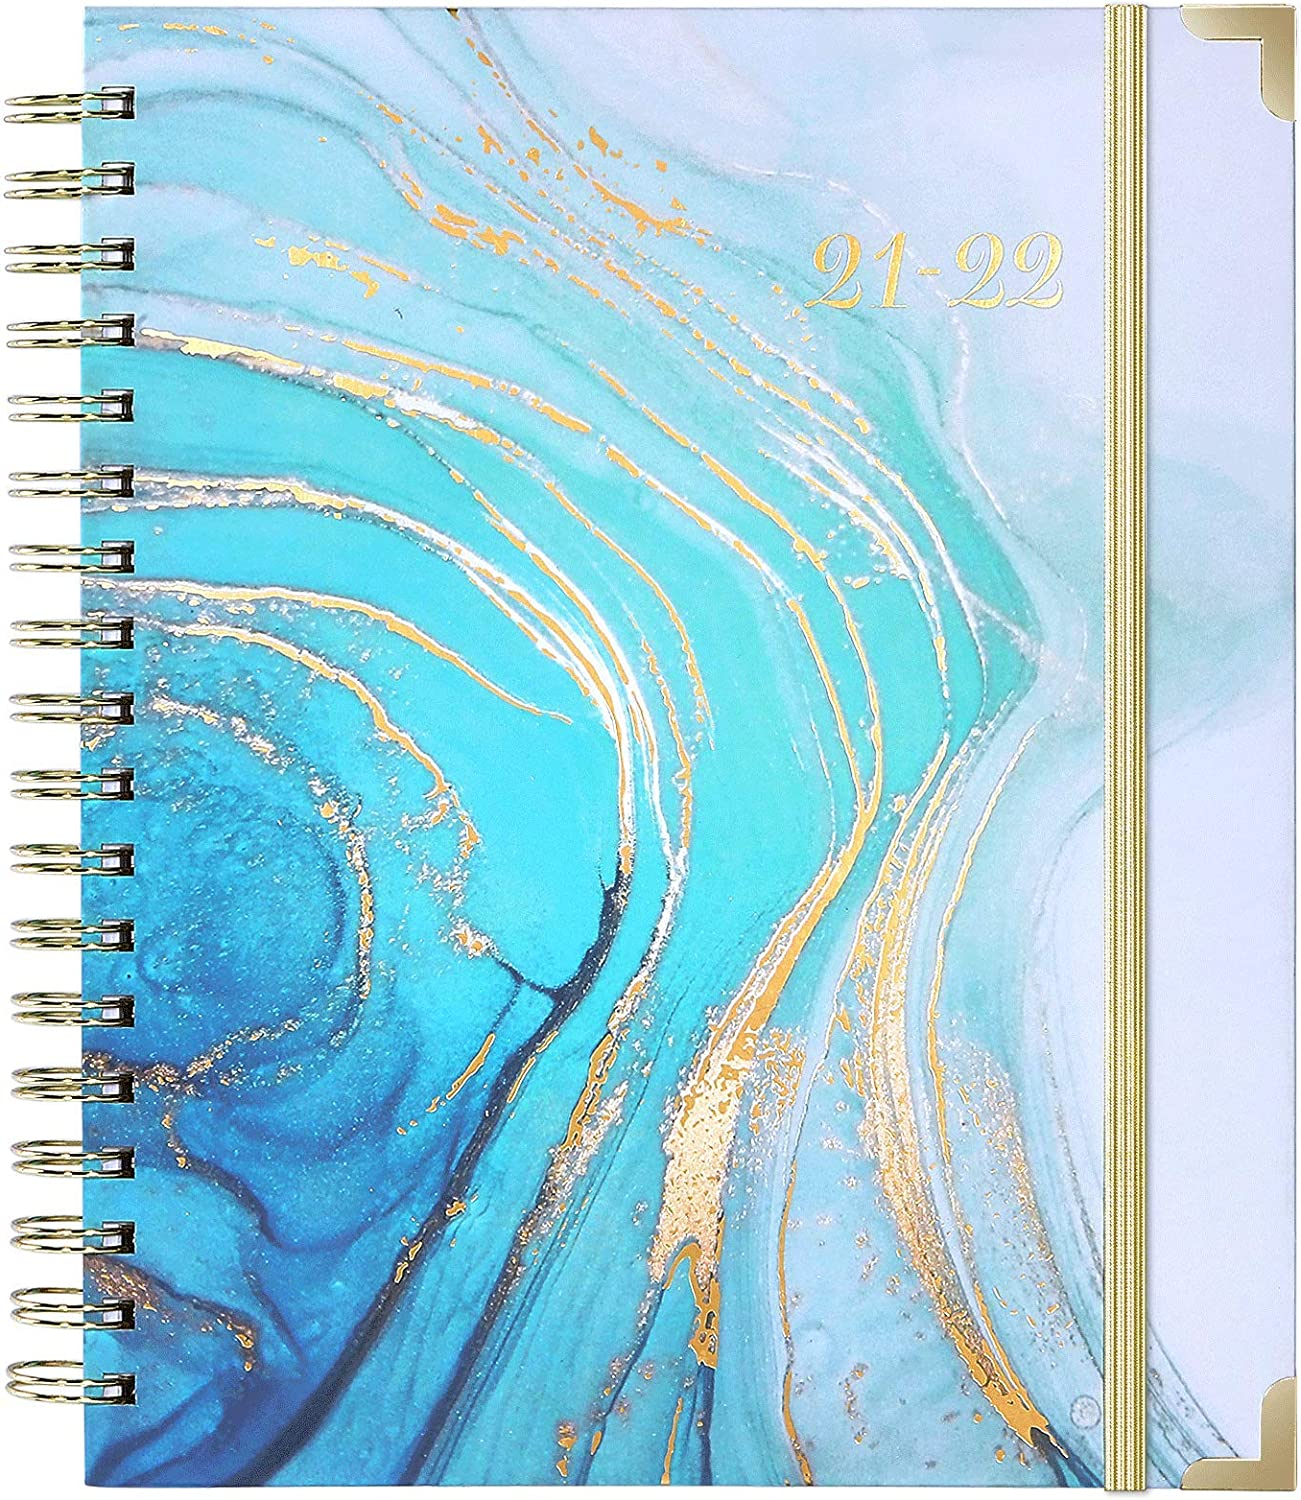 Free Shipping New Planner 2021-2022 - Weekly Monthly Academic Outlet sale feature